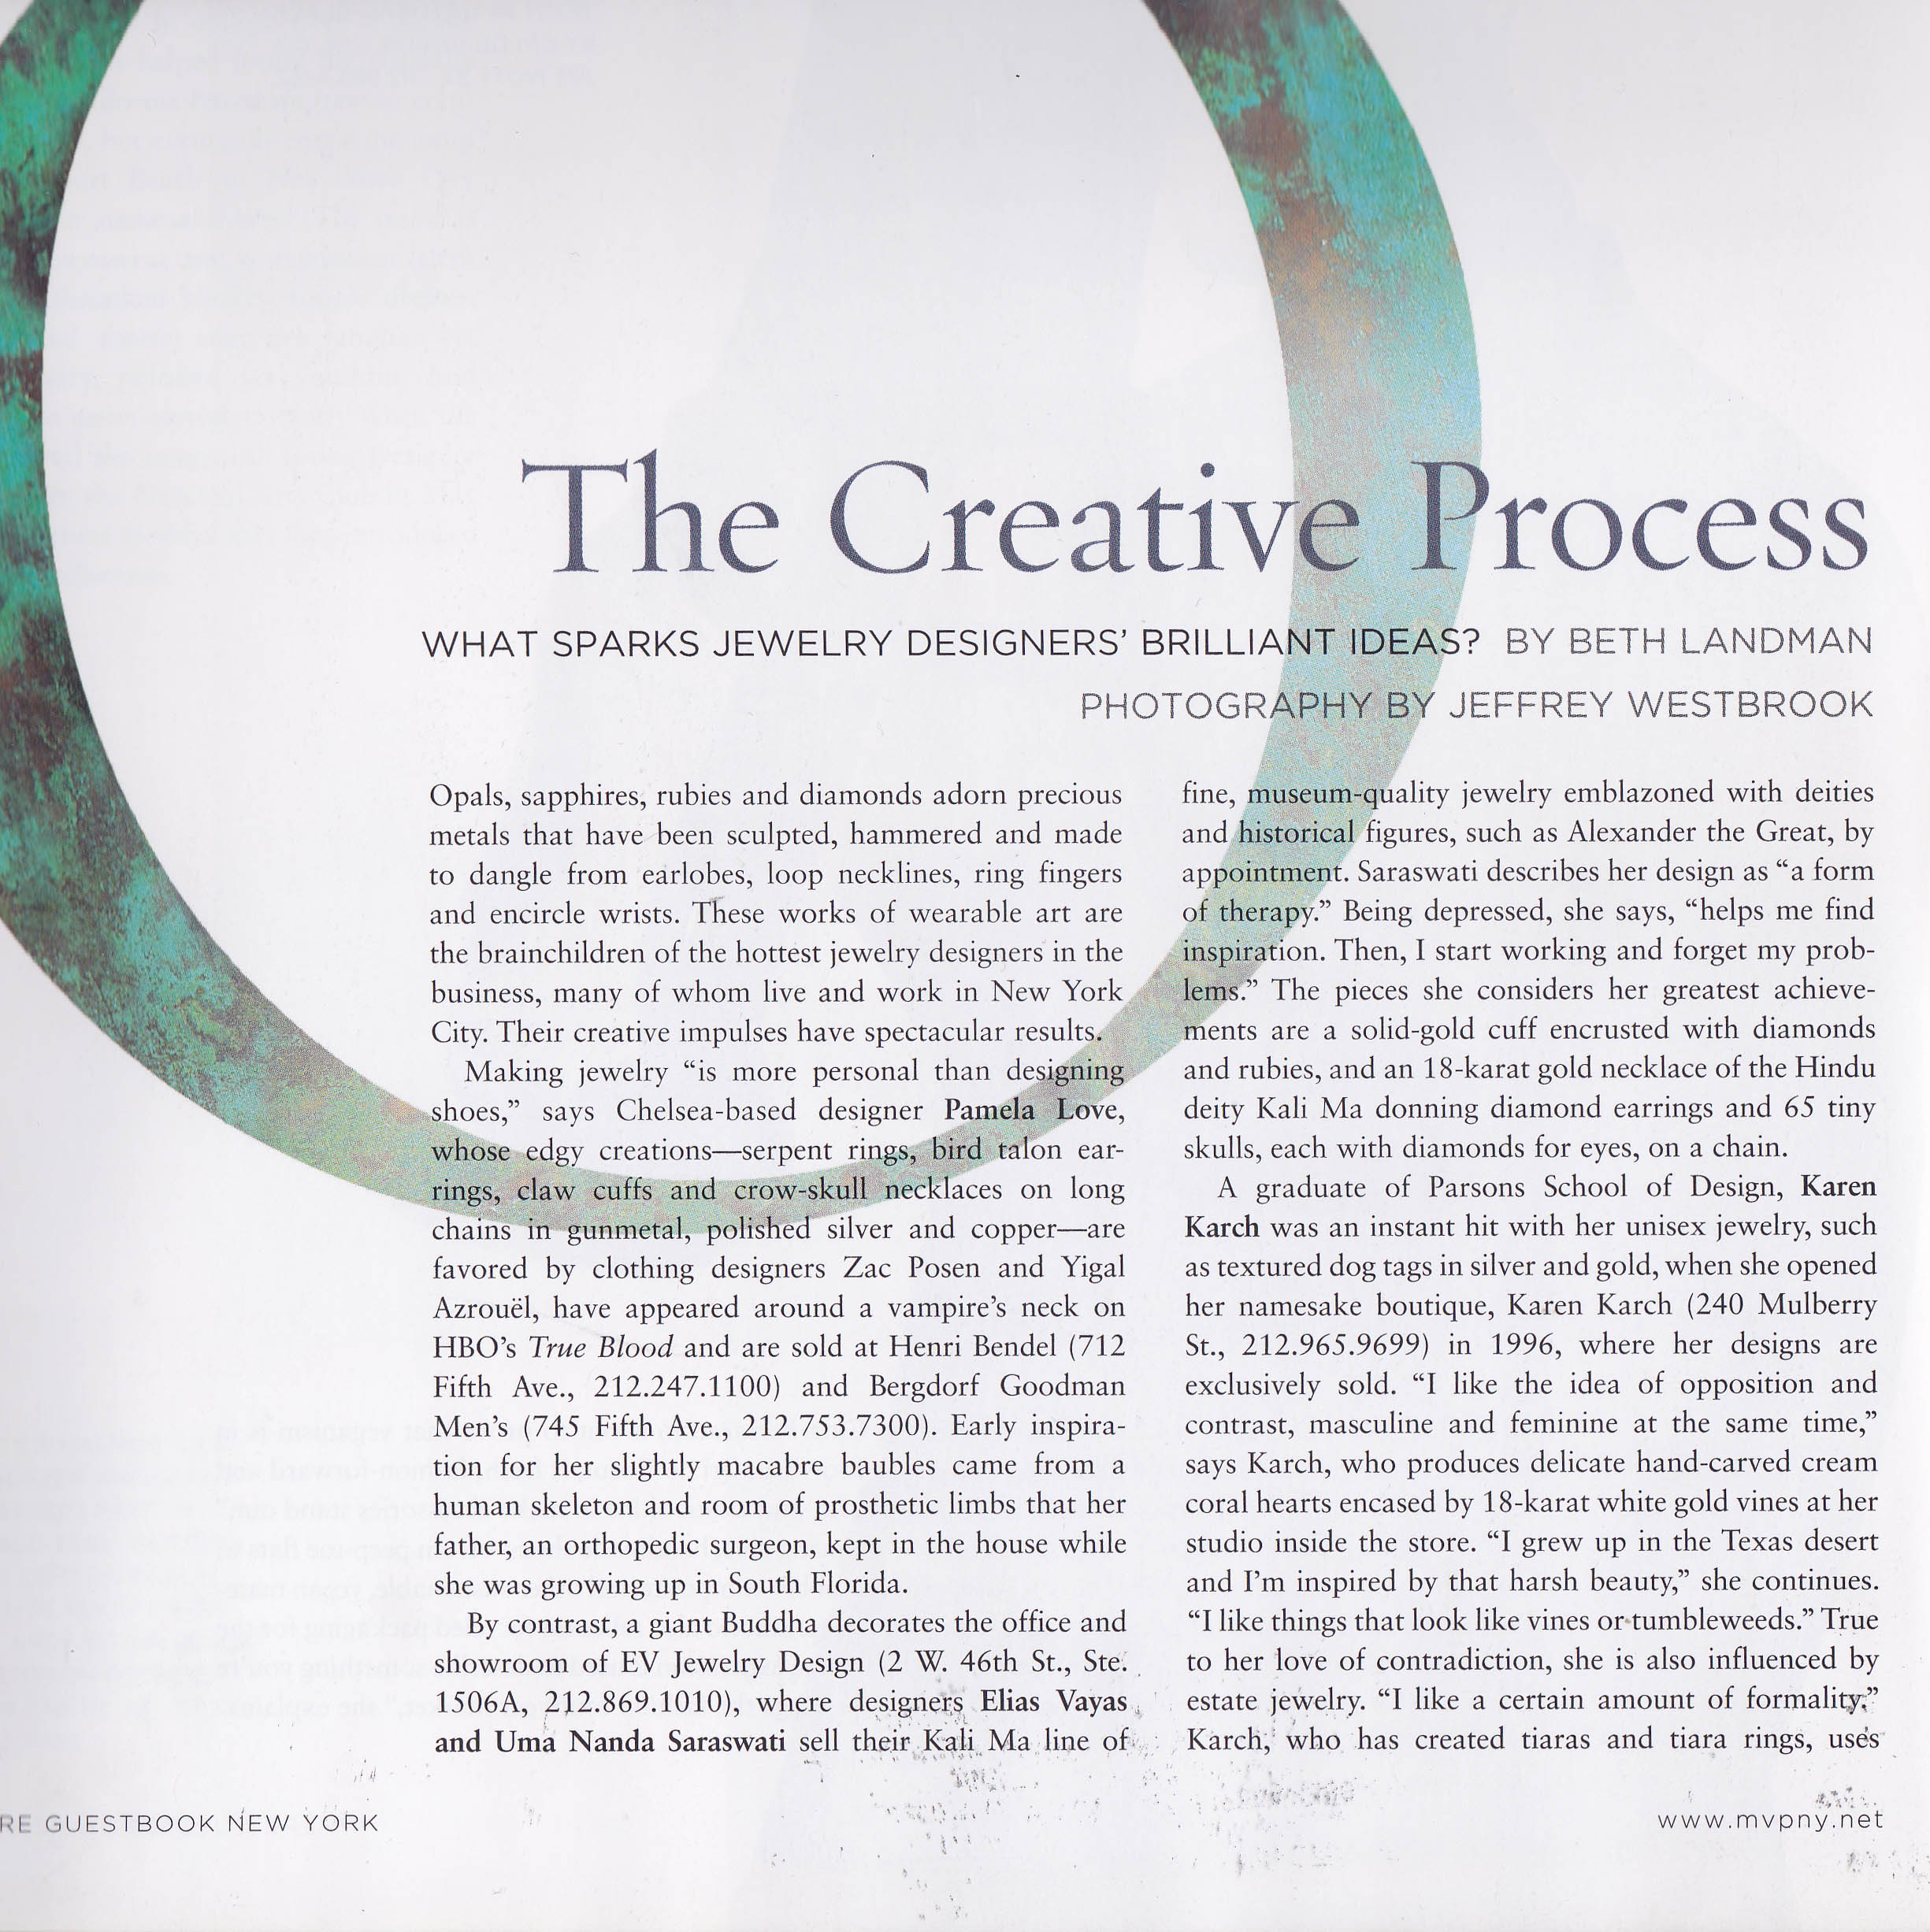 'The Creative Process' featuring Heather Morra